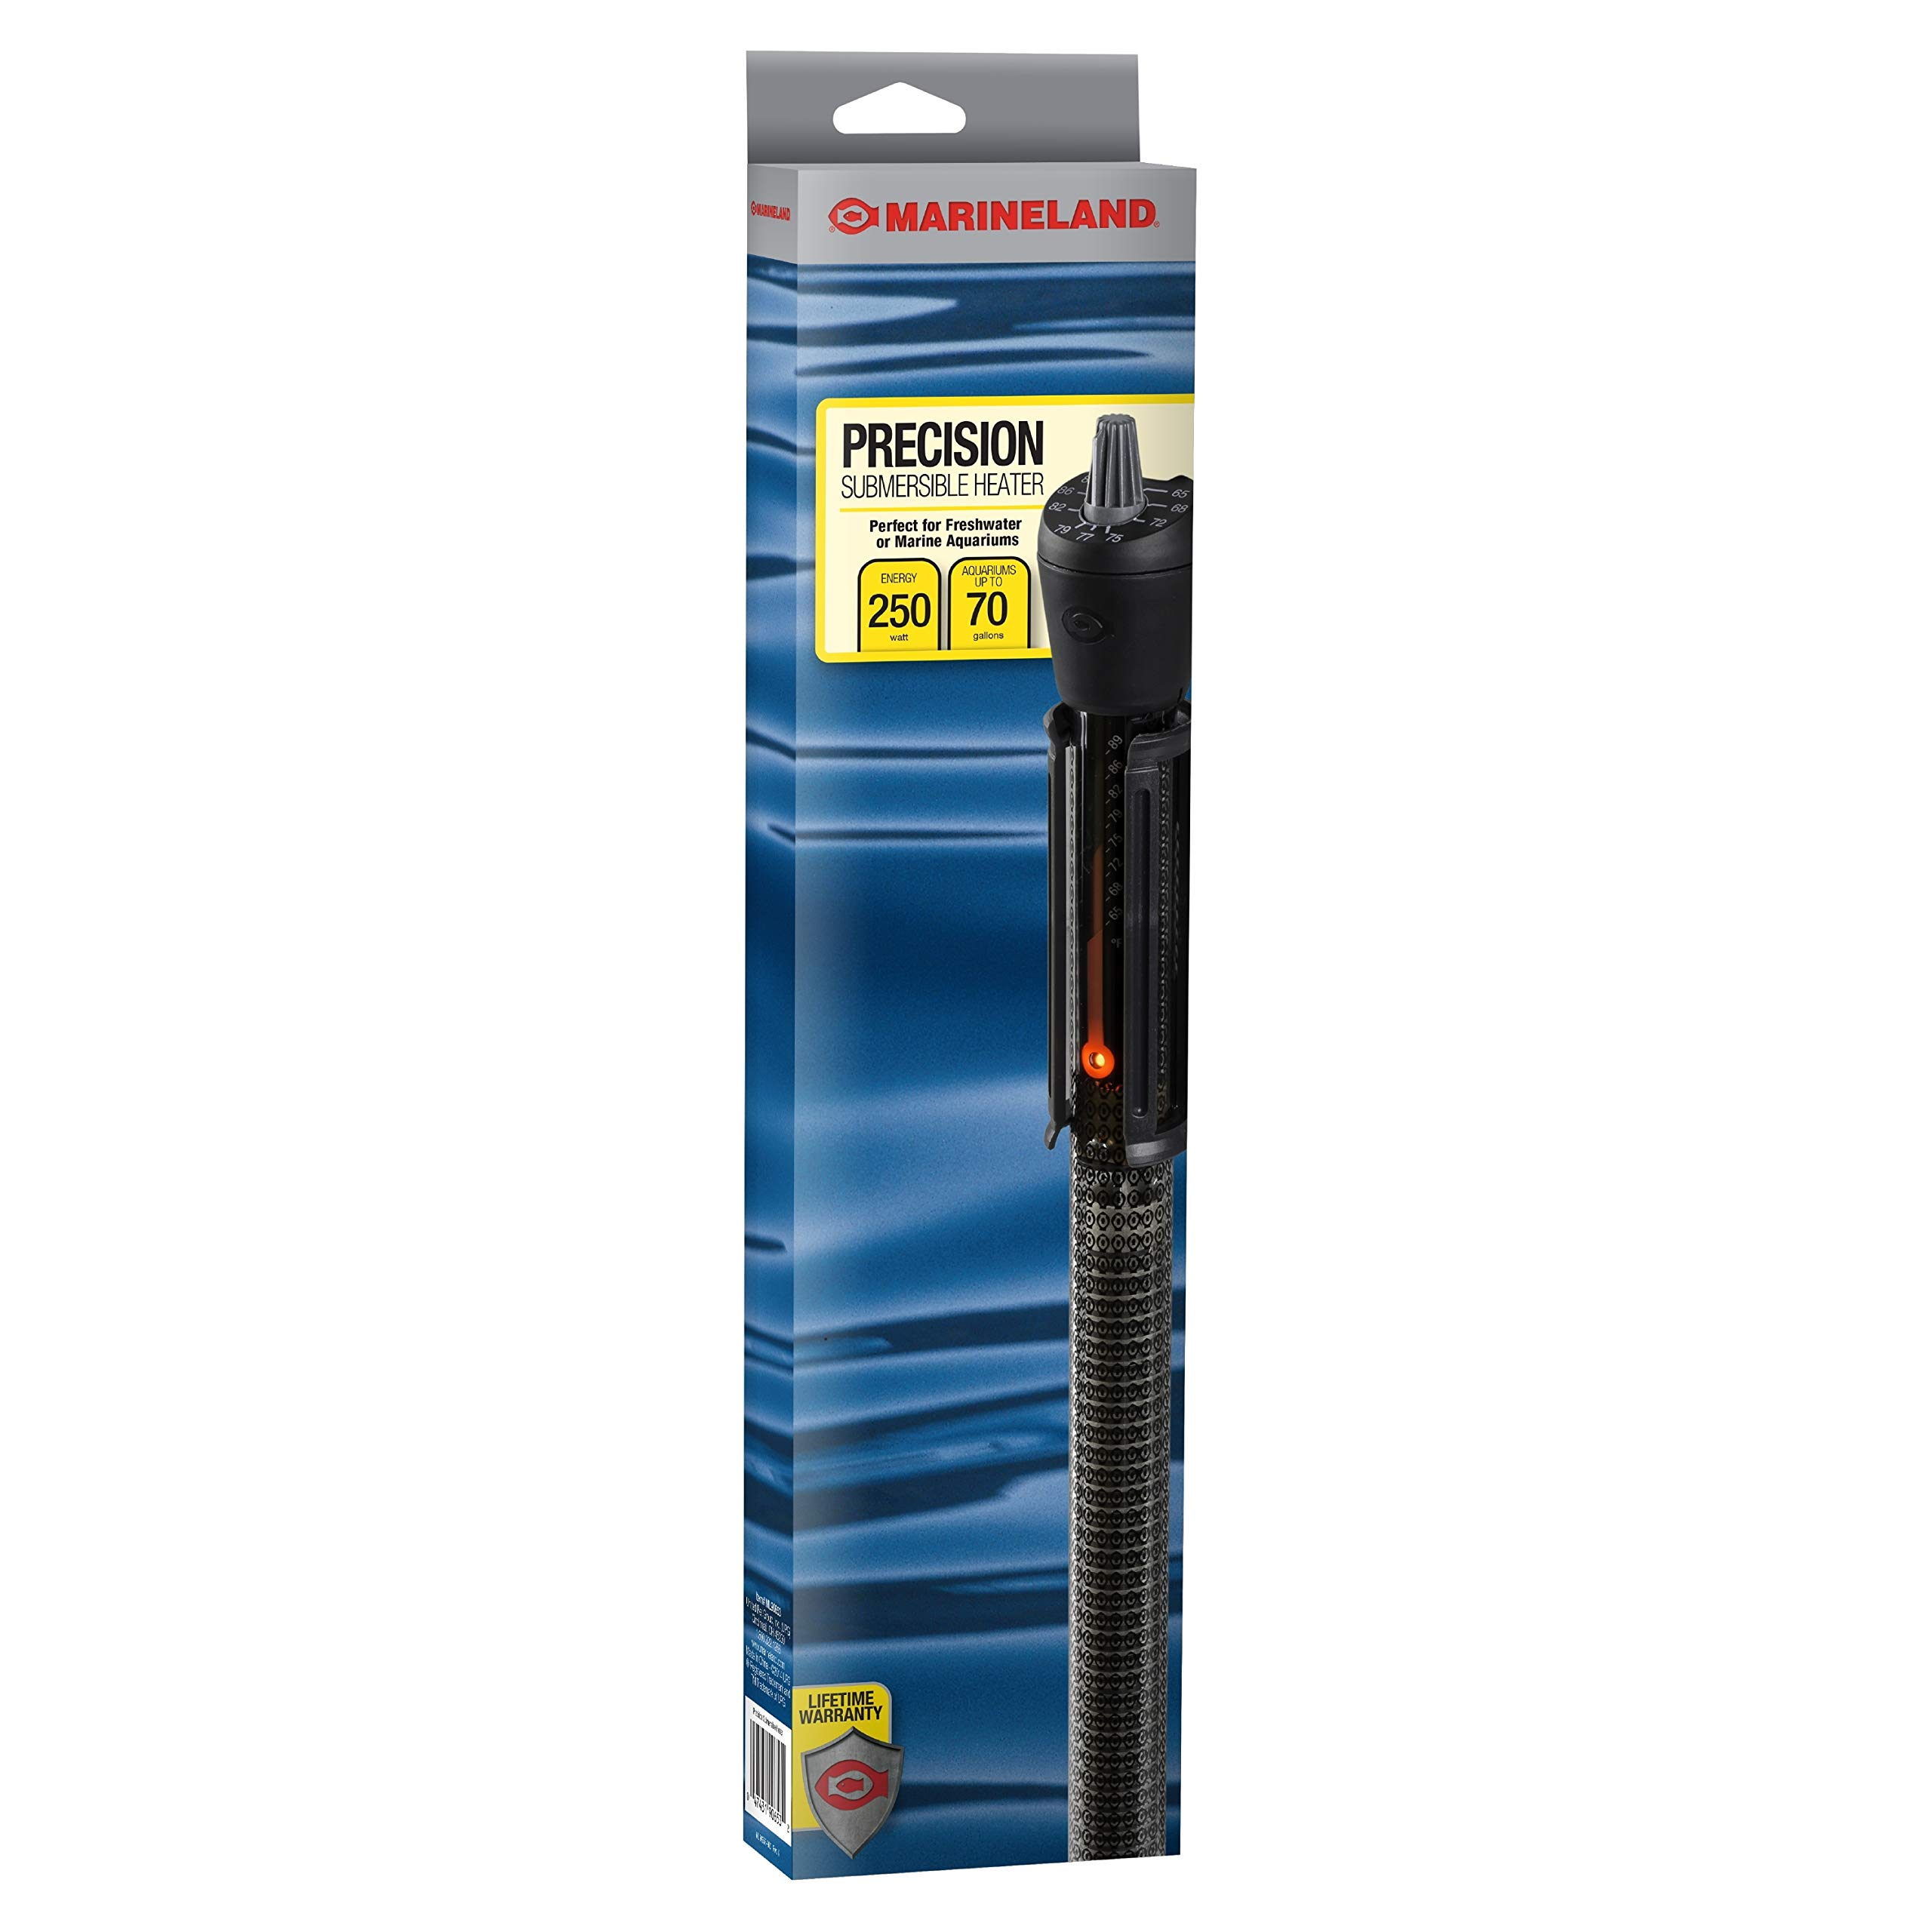 MarineLand Precision Submersible Heater, for Freshwater or Saltwater Aquariums by MarineLand